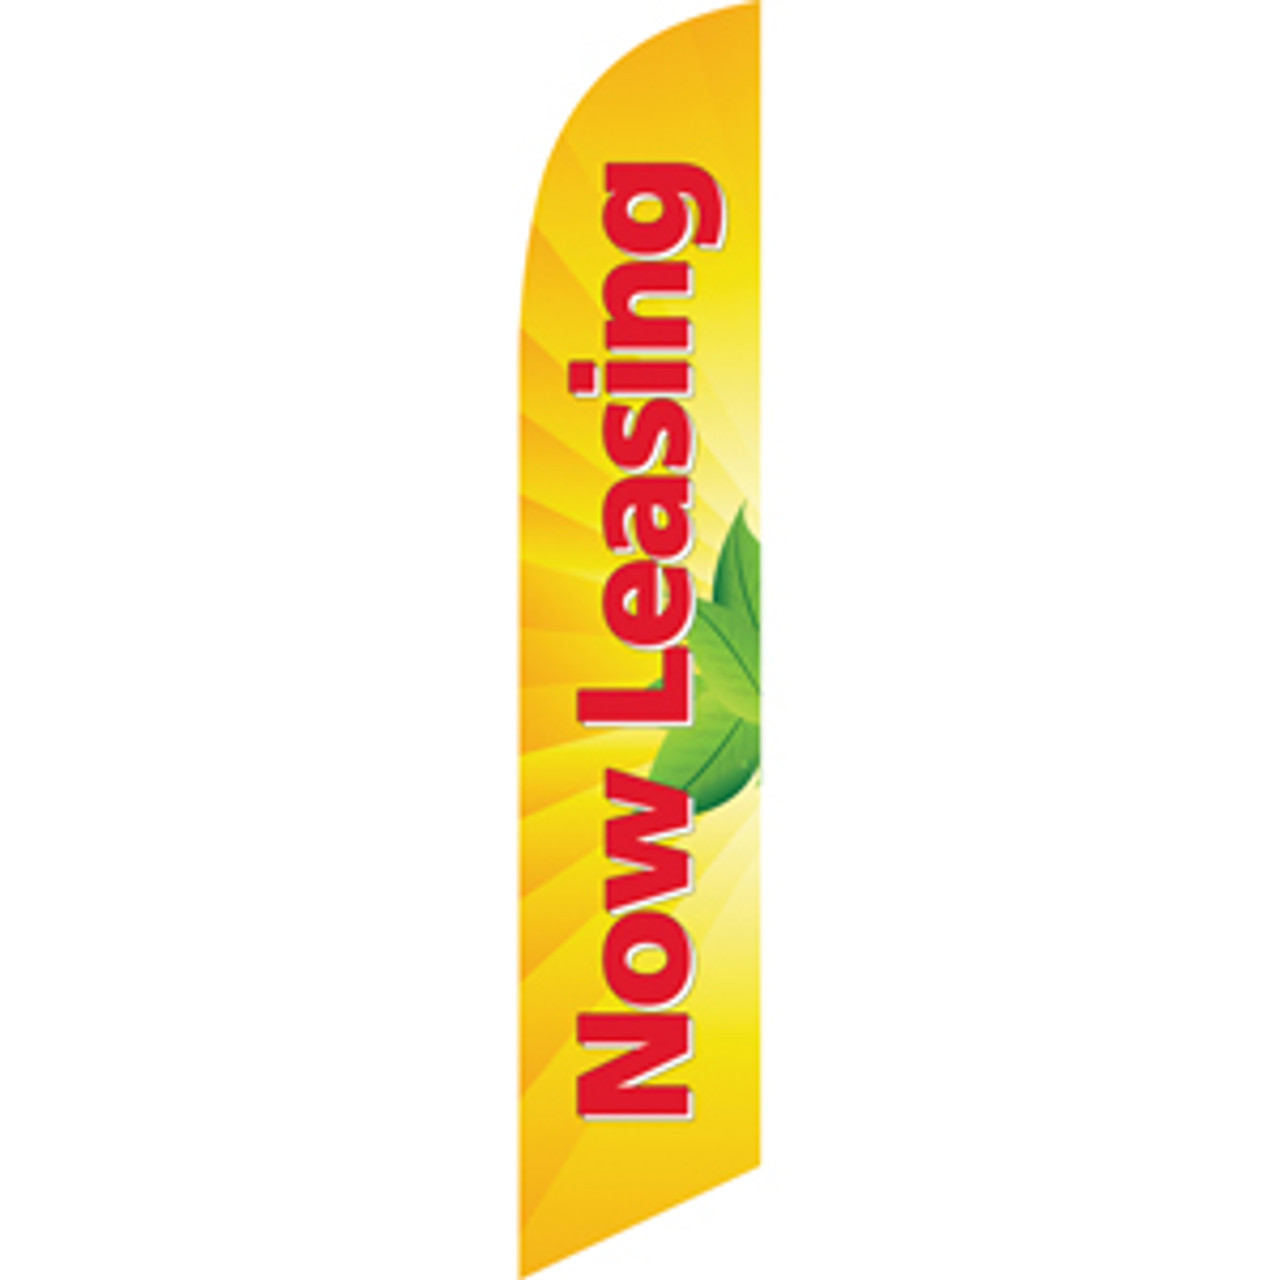 Now Leasing (yellow background) Semi Custom Feather Flag Kit